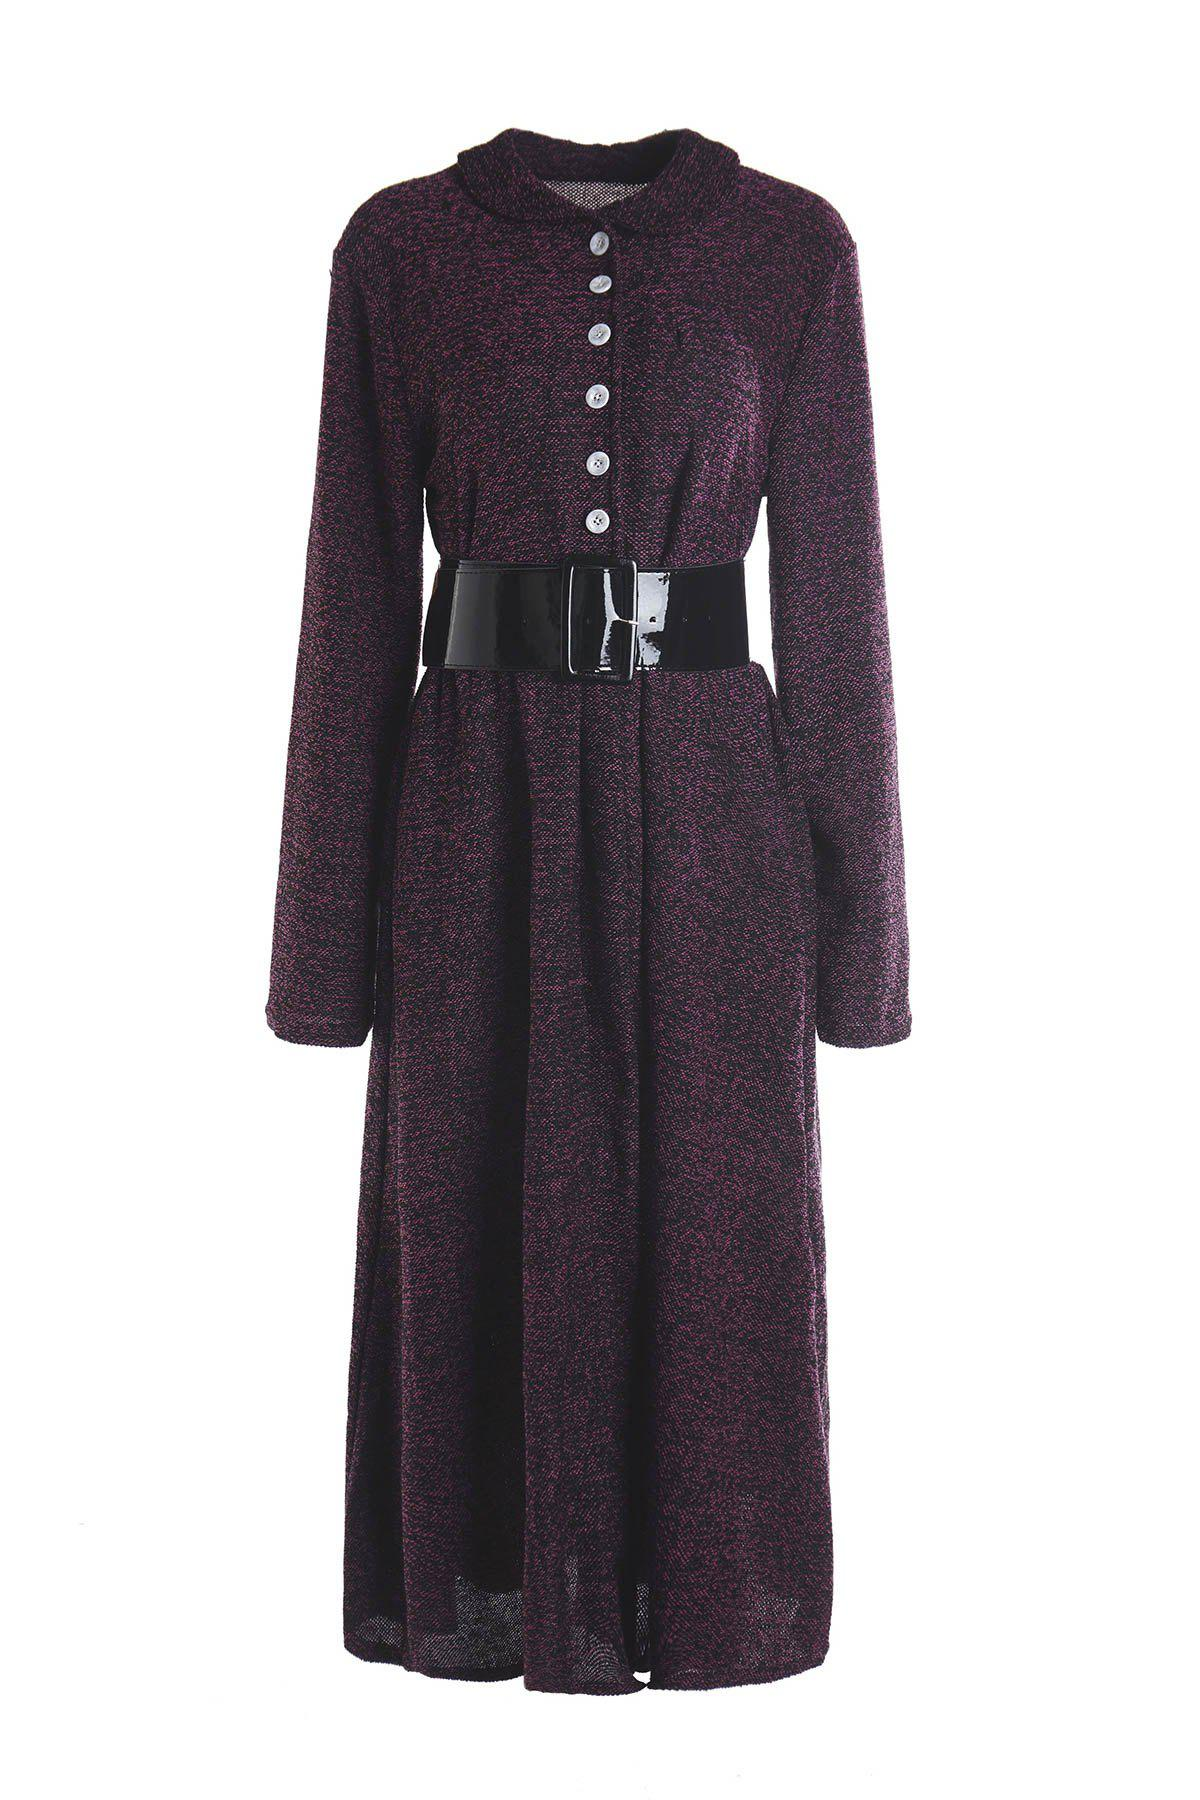 Vintage Women's Turn-Down Collar Long Sleeve A-Line Dress - PURPLE M